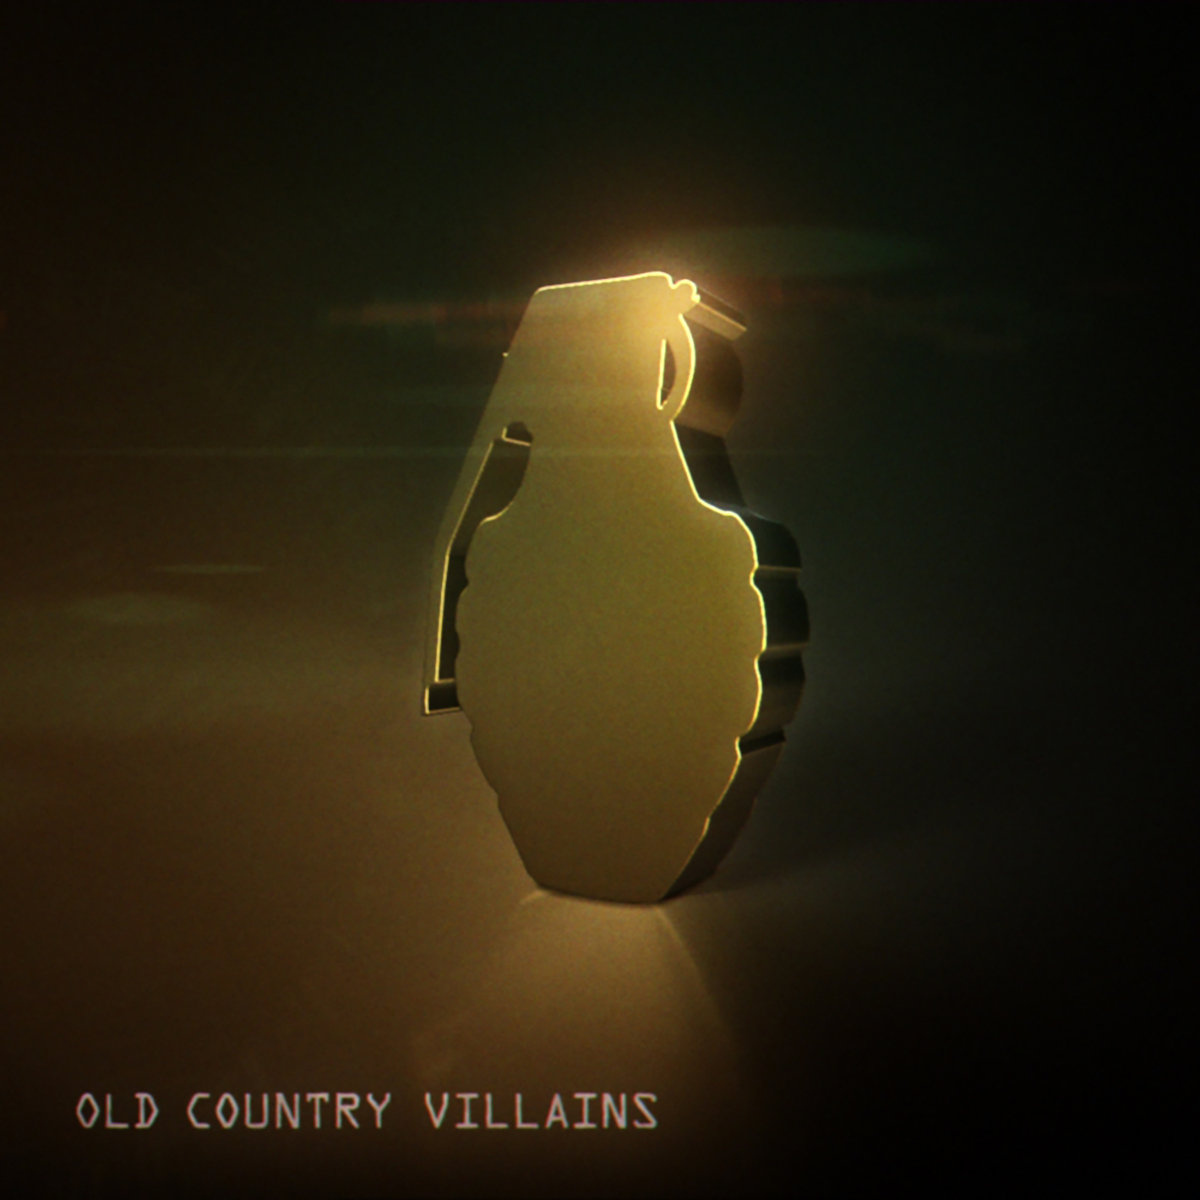 Old Country Villains - OCV - 2017 (Engineer)